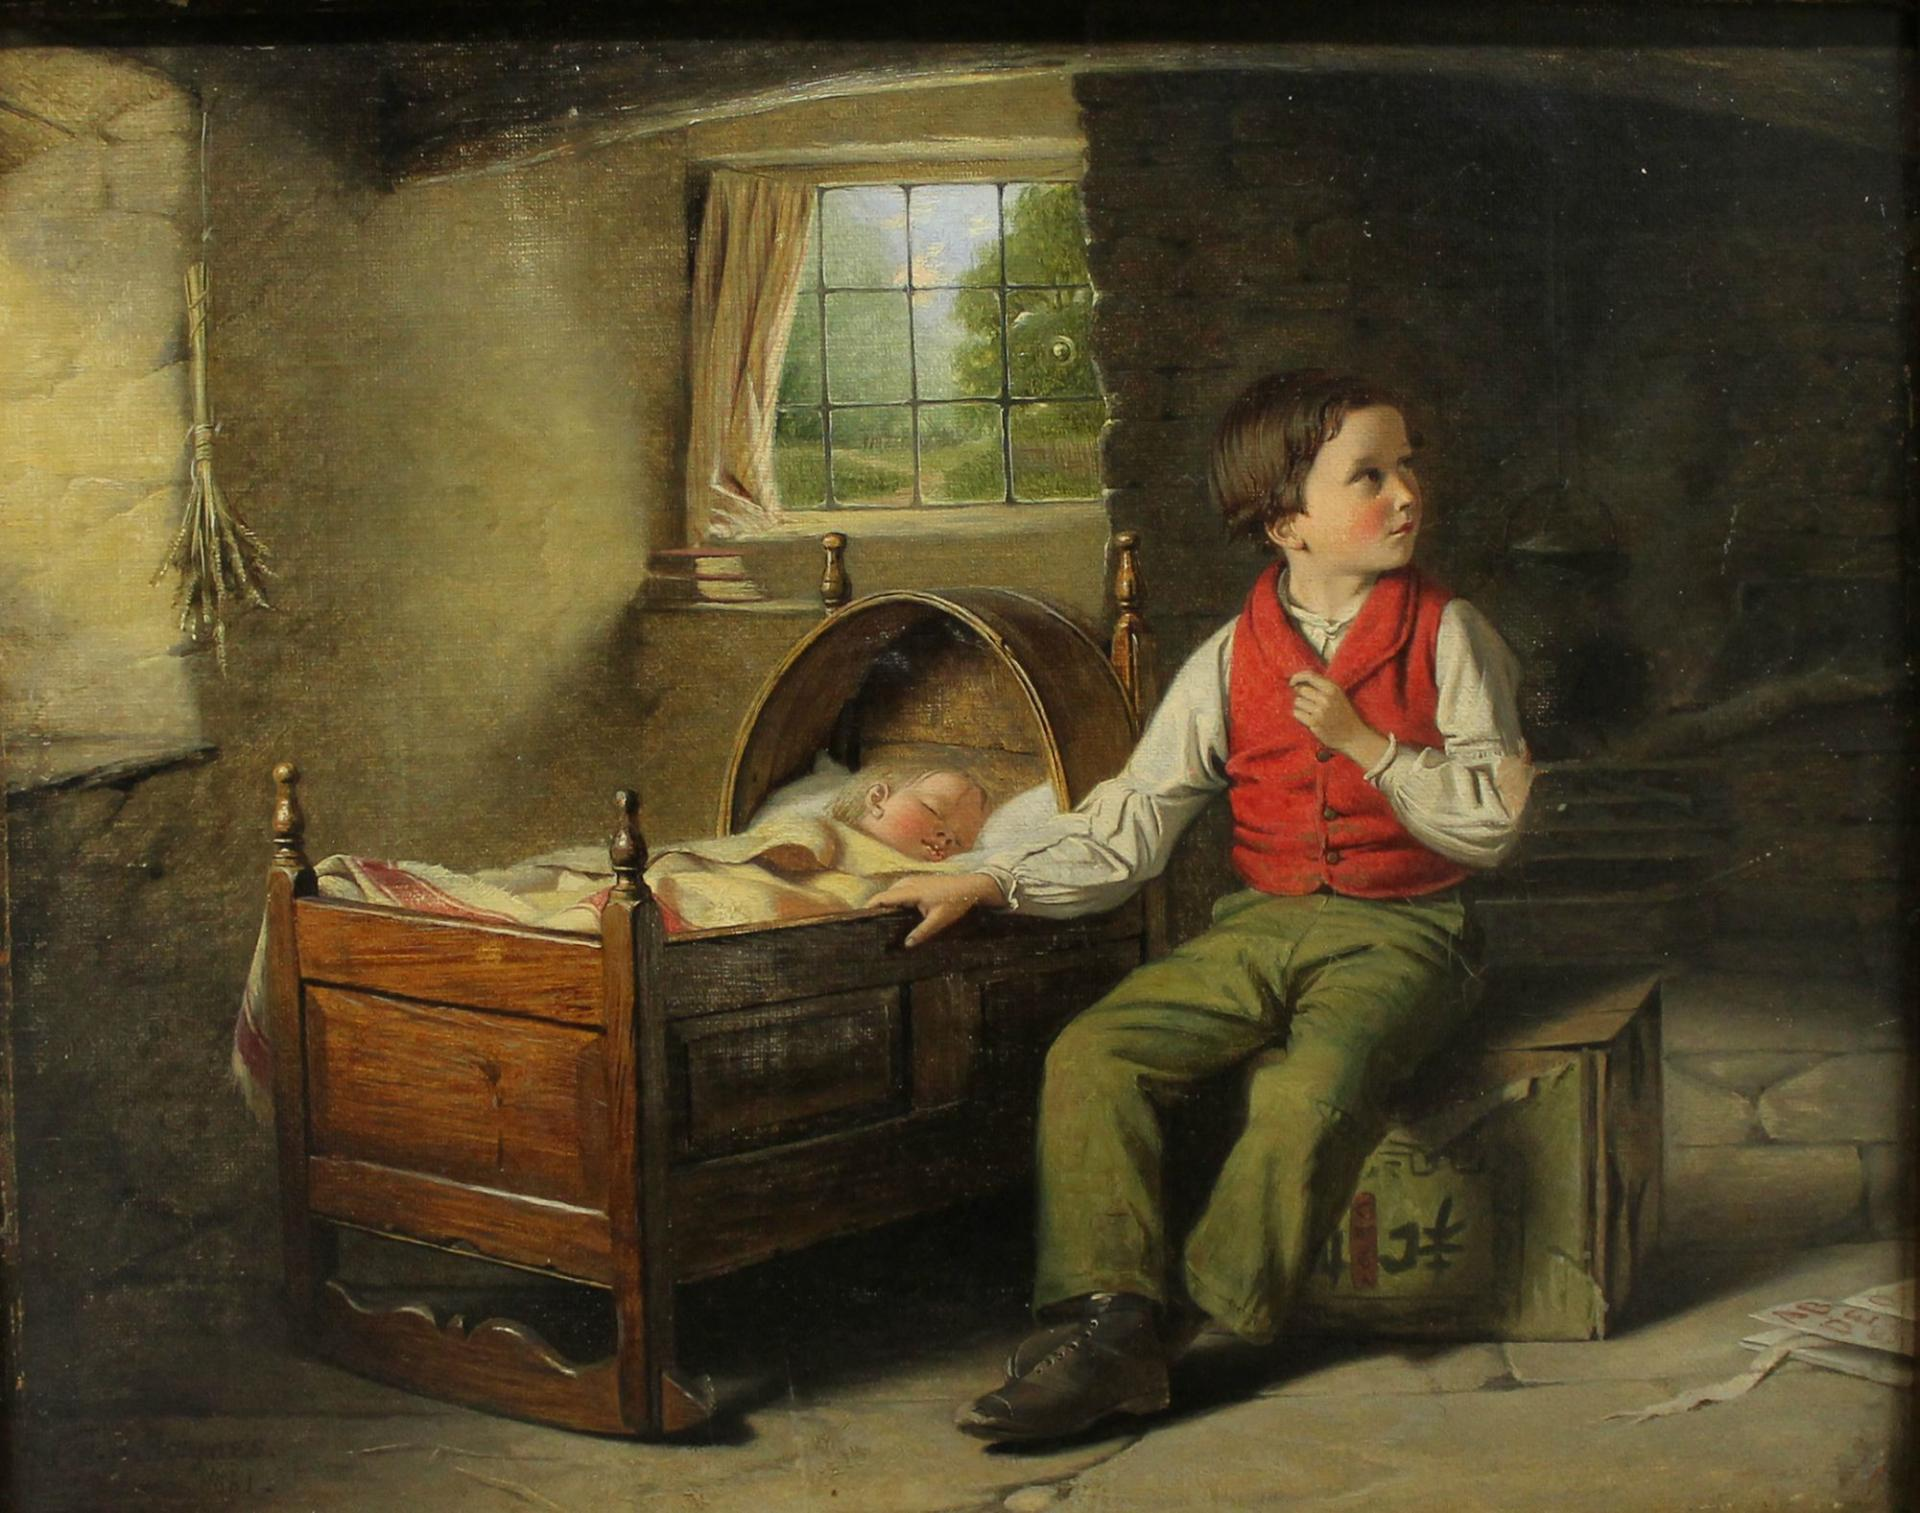 Oil painting of a young boy watching over his baby sibling called Some Must Watch While Some Must Sleep